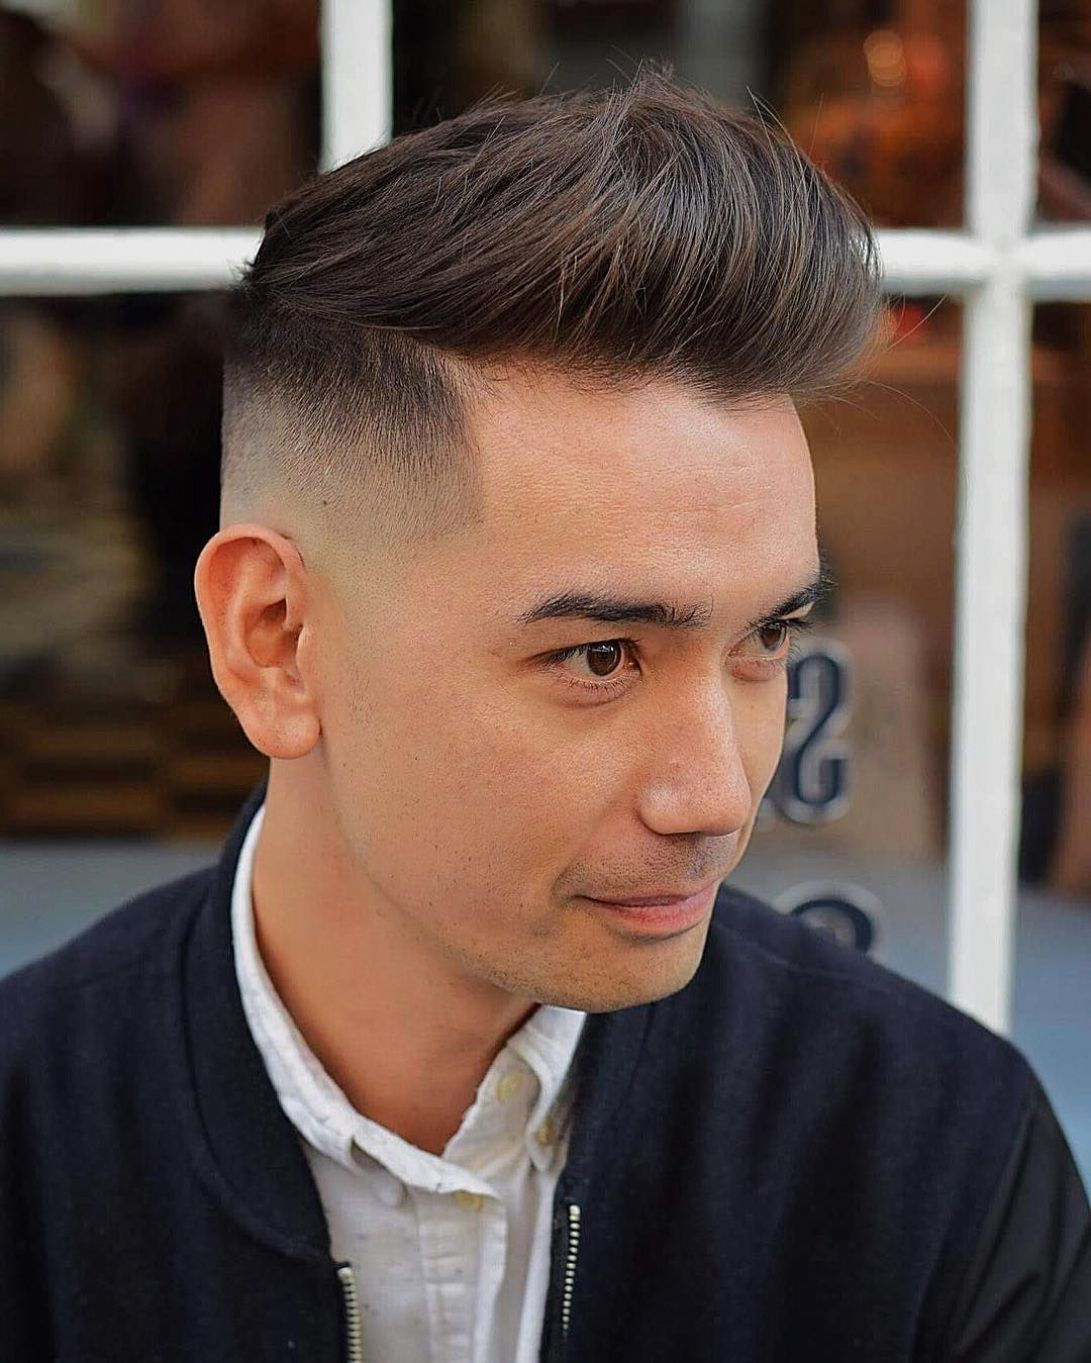 Stunning Haircuts For Receding Hairlines The Latest Obtain Handsome Men Hairstyle Haircuts For Receding Hairlines